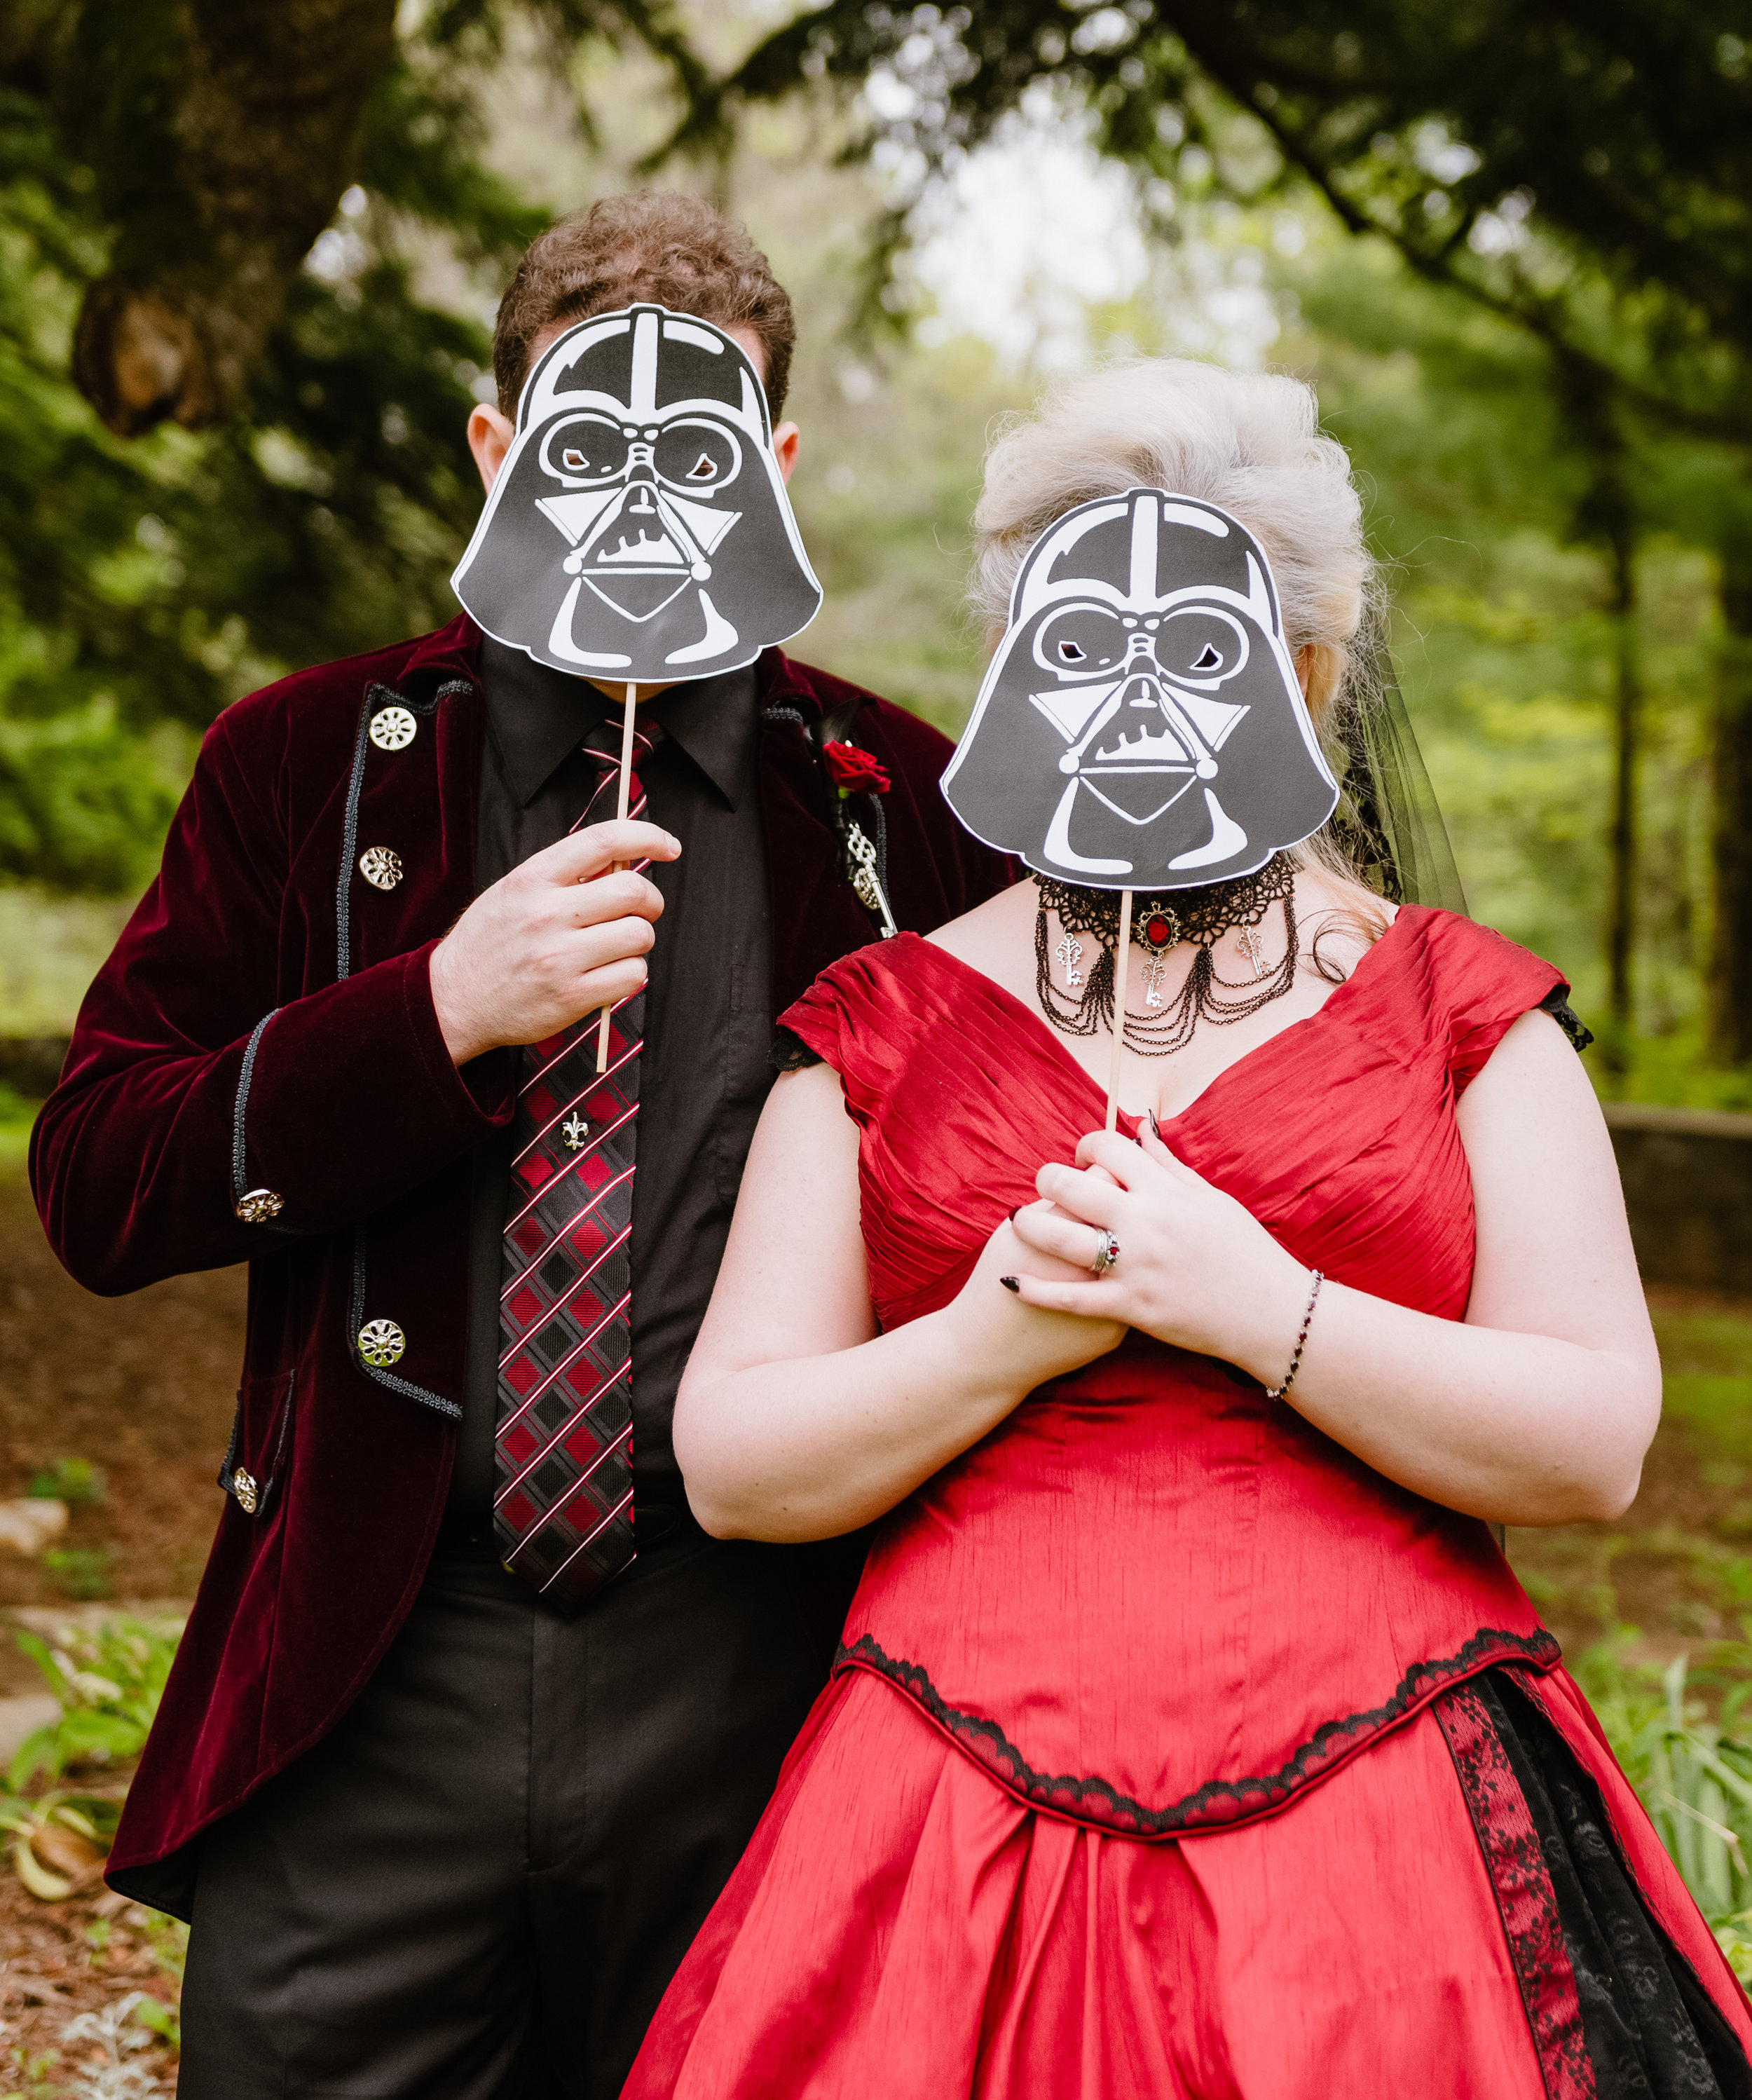 Virginia-Star-Wars-goth-nerd-wedding.jpg